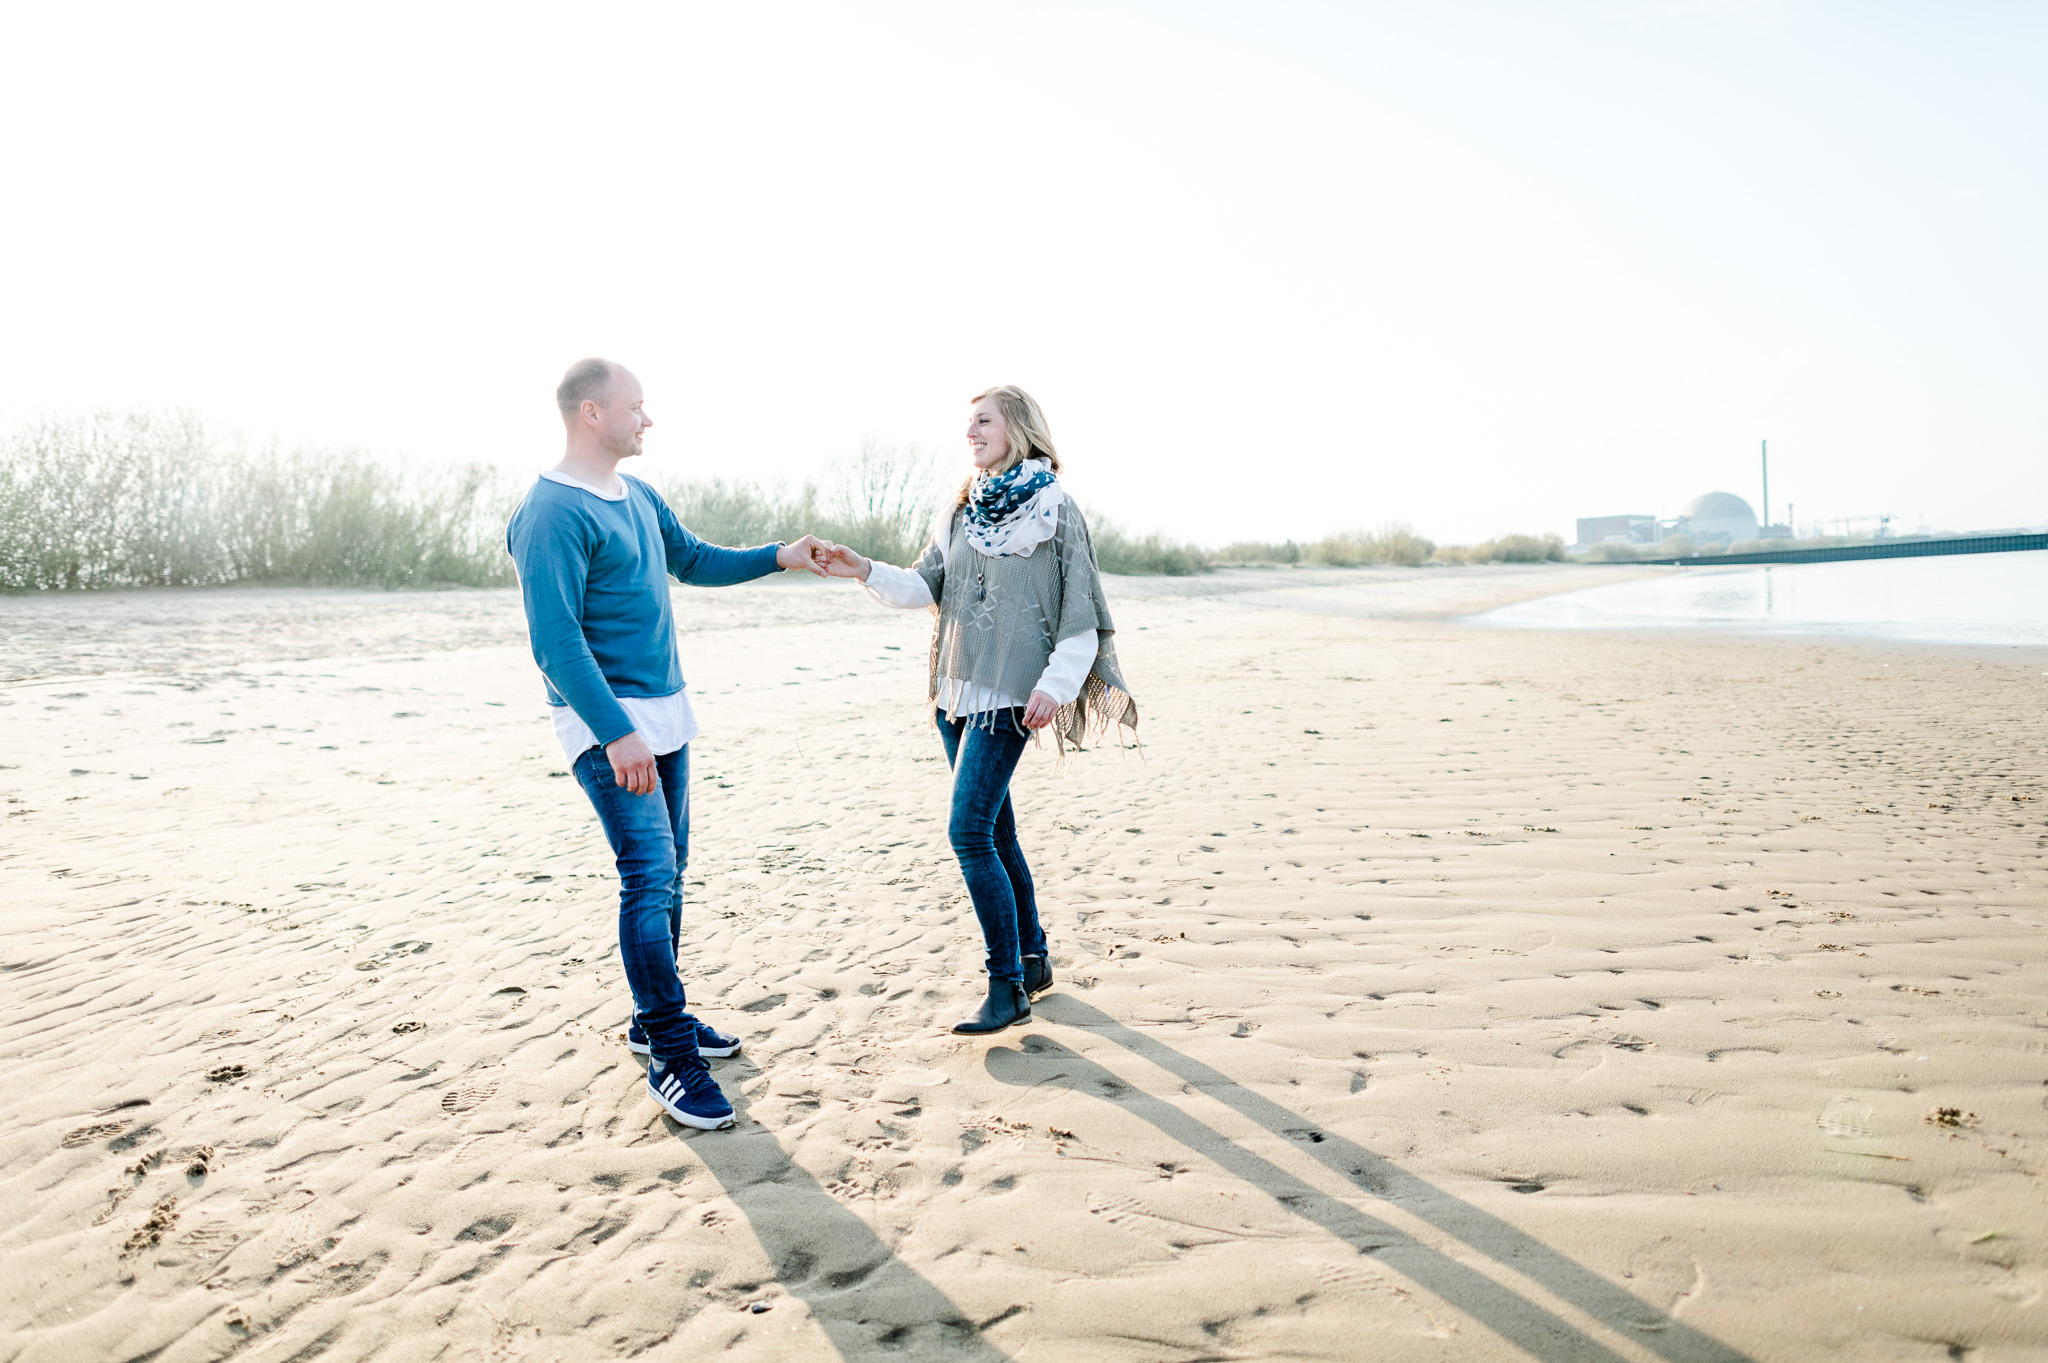 hochzeitsfotograf-wedding-photography-Engagement-stade-elbe003